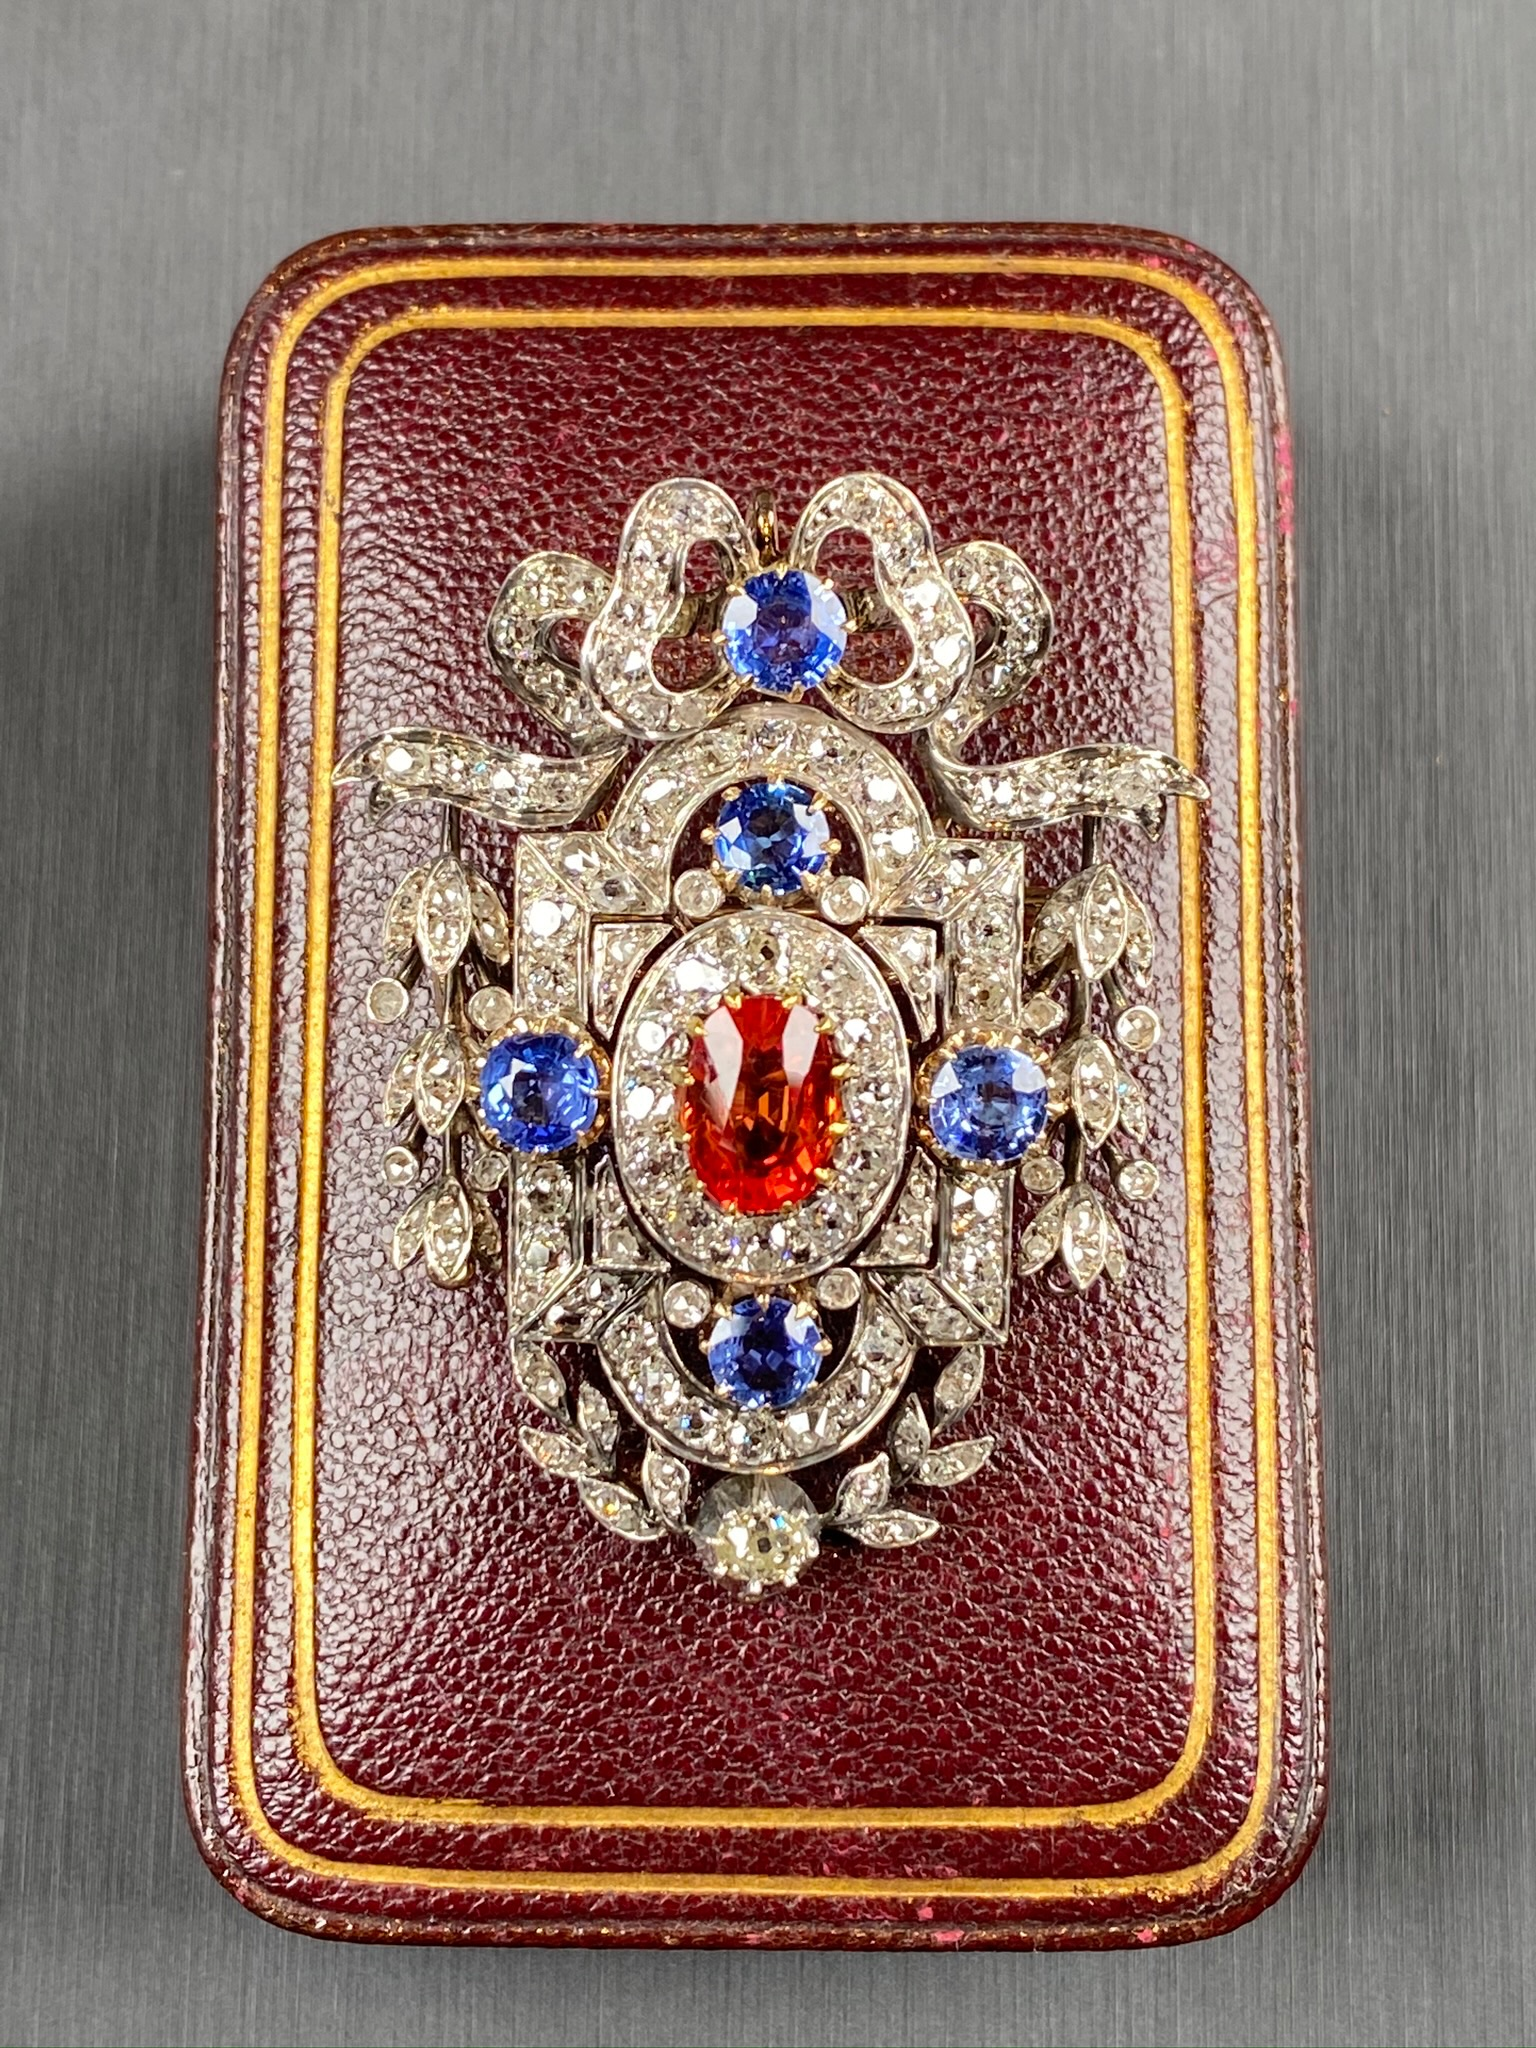 Sapphire Brooch, Victorian - Image 5 of 8